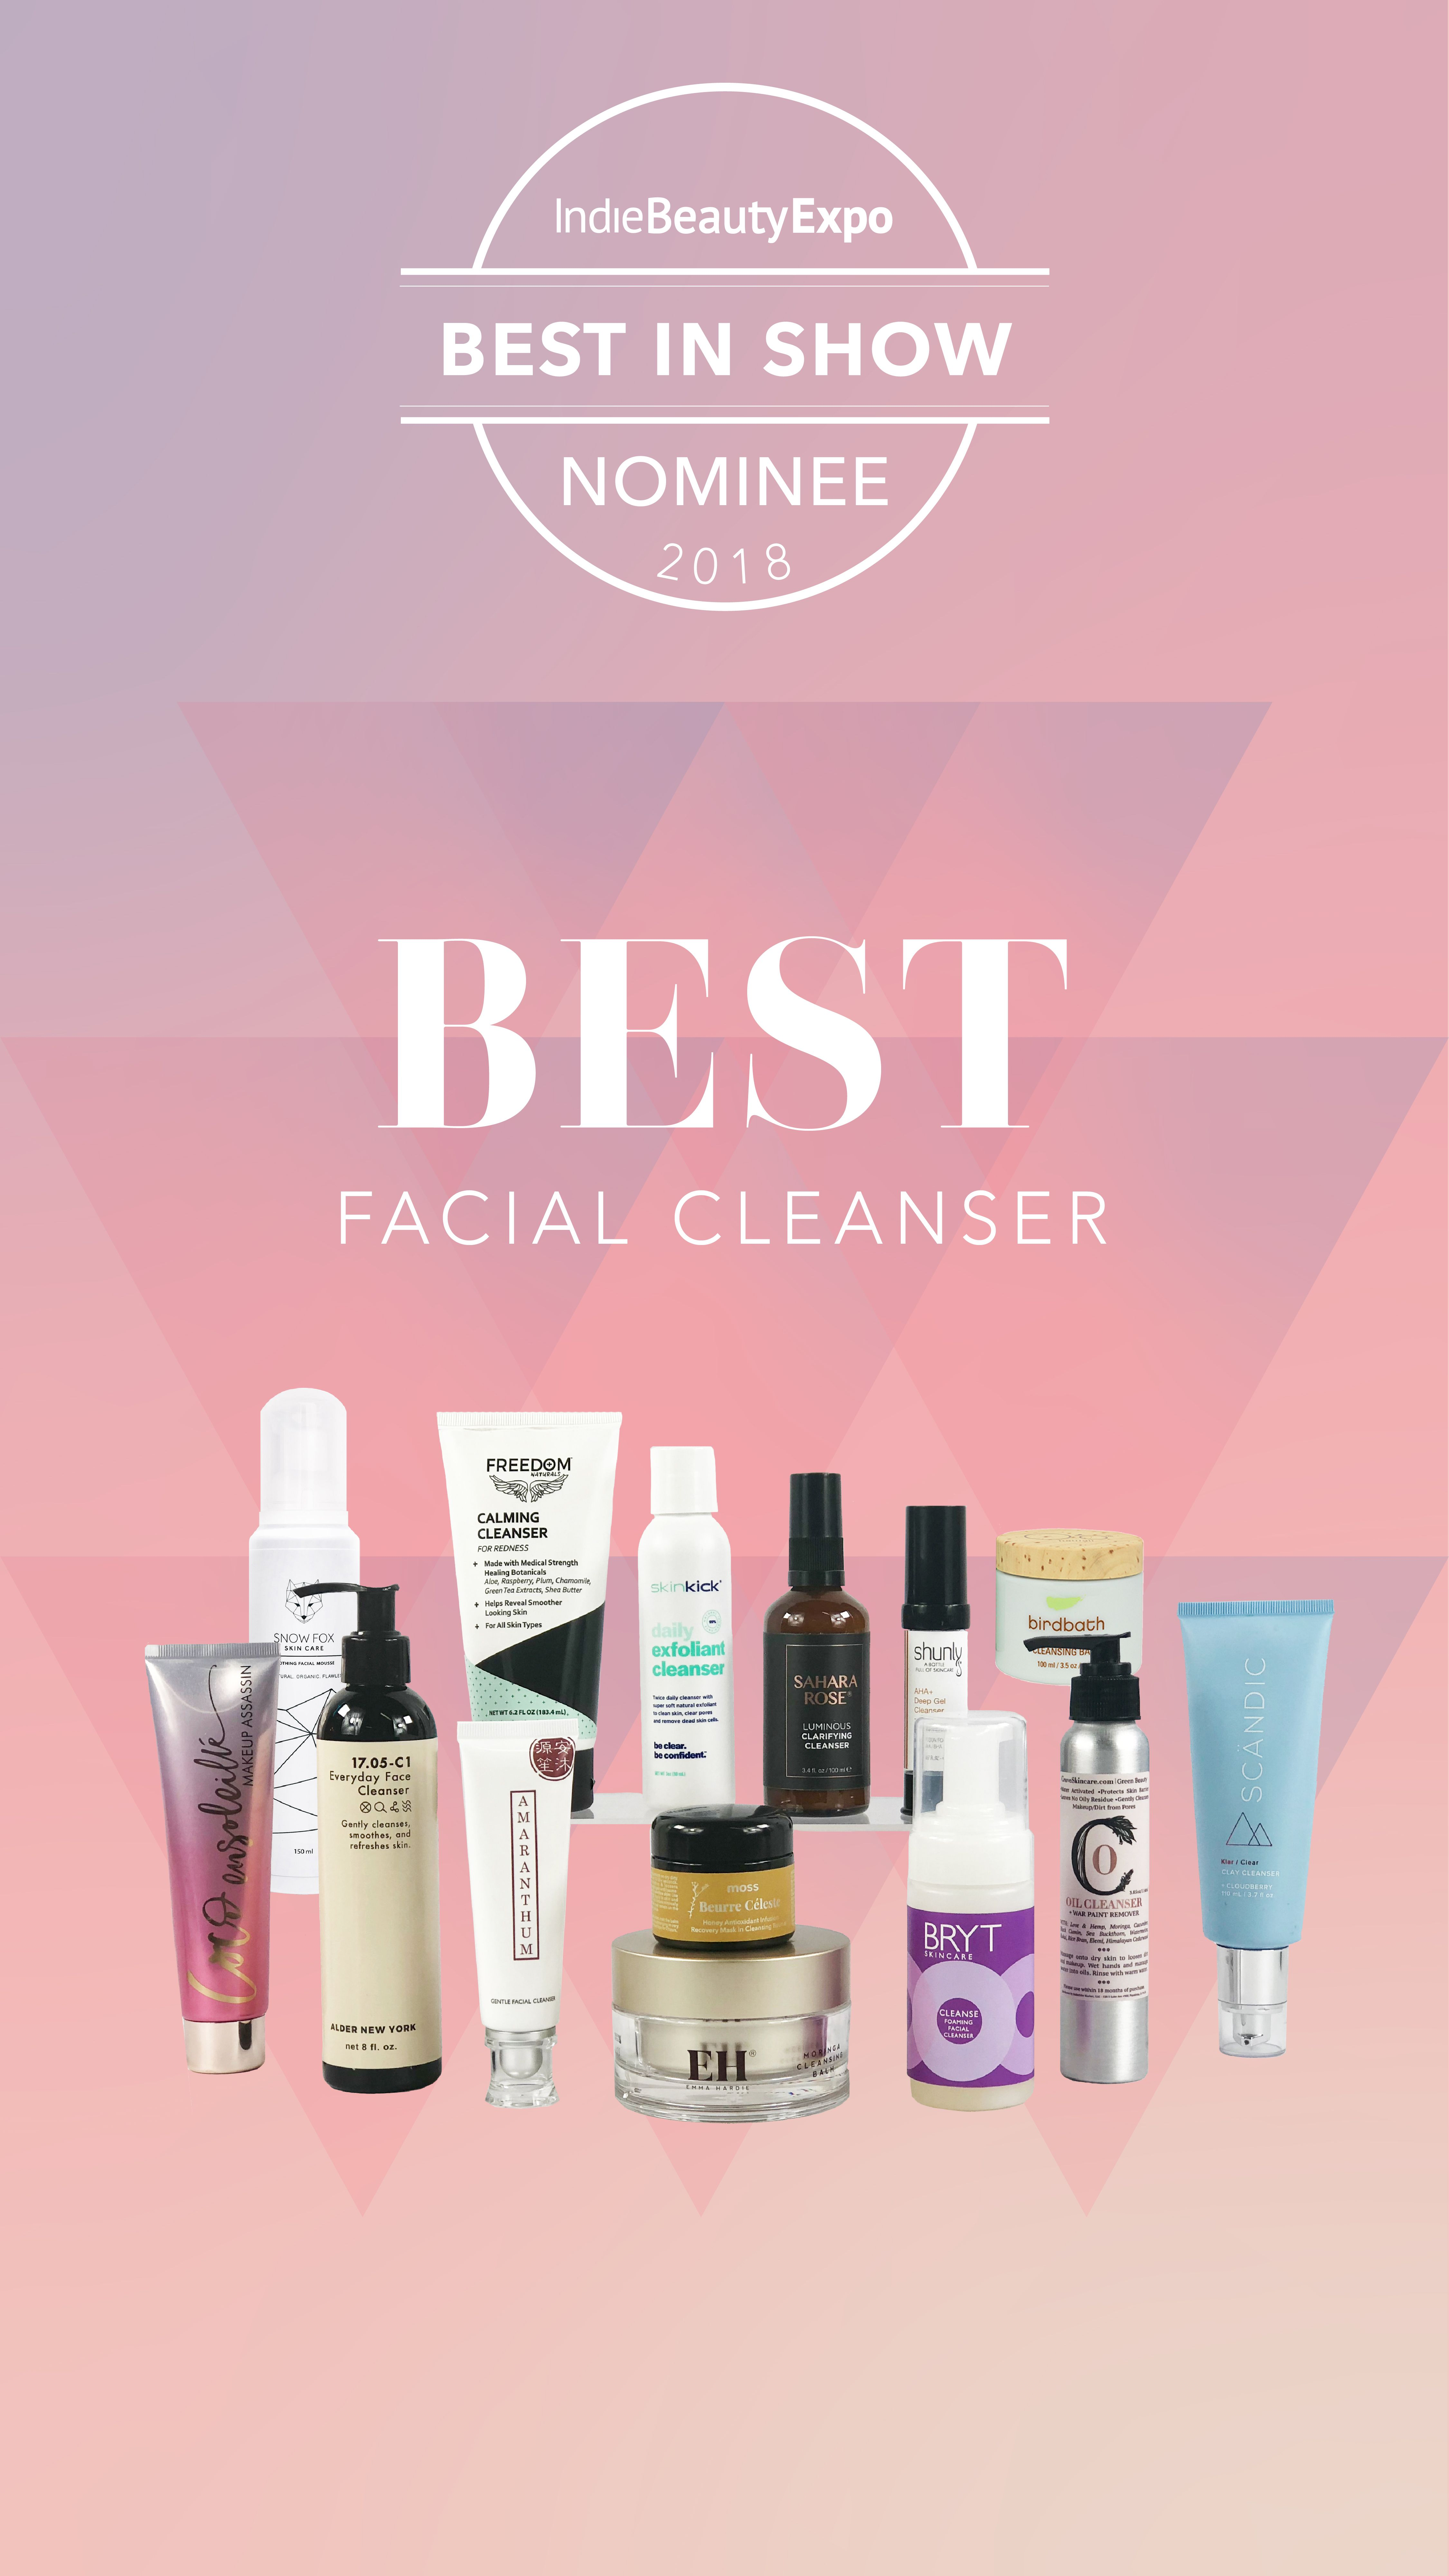 Daily Exfoliant Cleanser Best facial cleanser, Cleanser